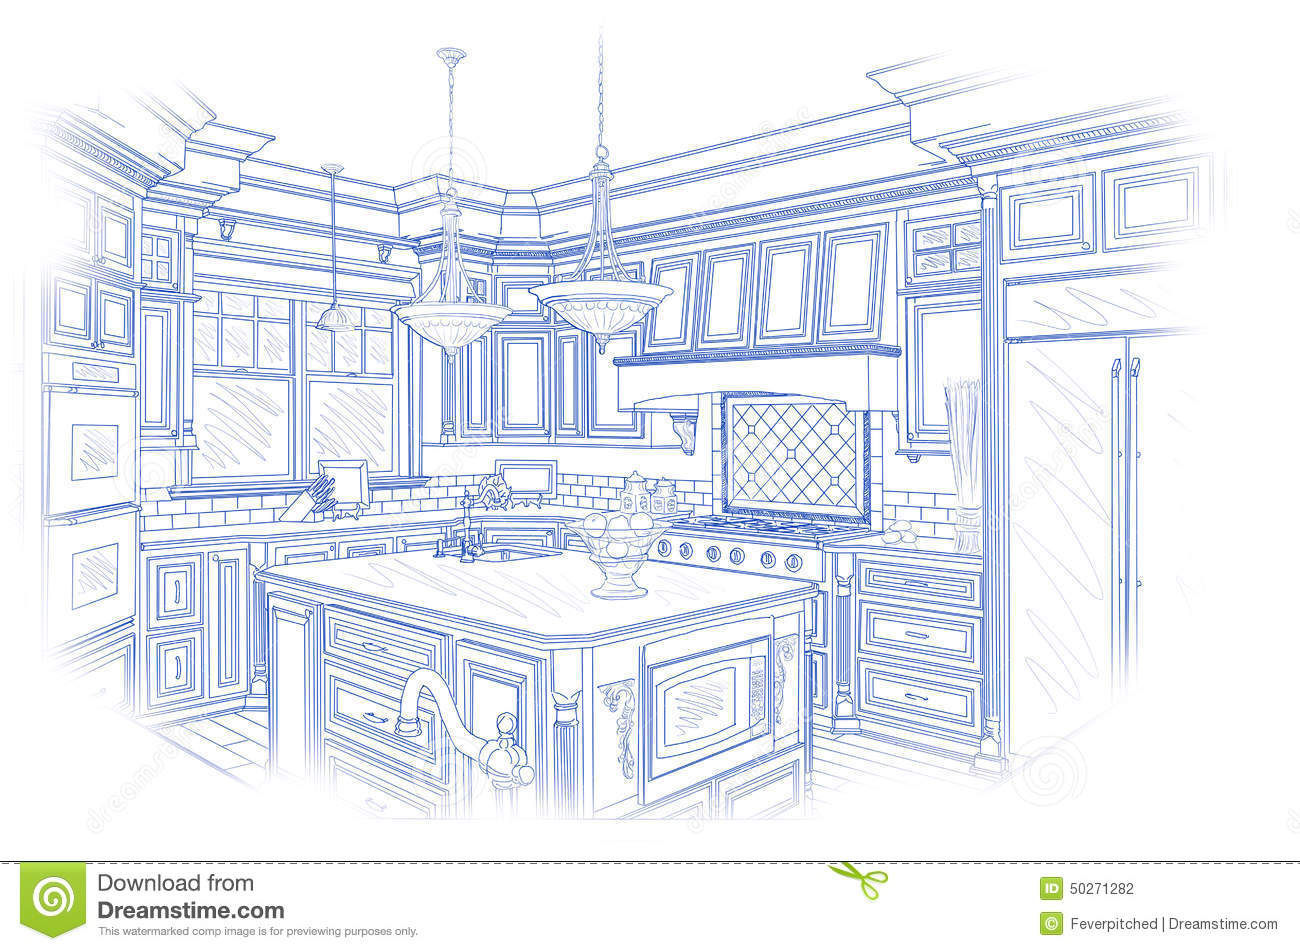 Blueprint custom kitchen design drawing on white stock blueprint custom kitchen design drawing on white malvernweather Image collections